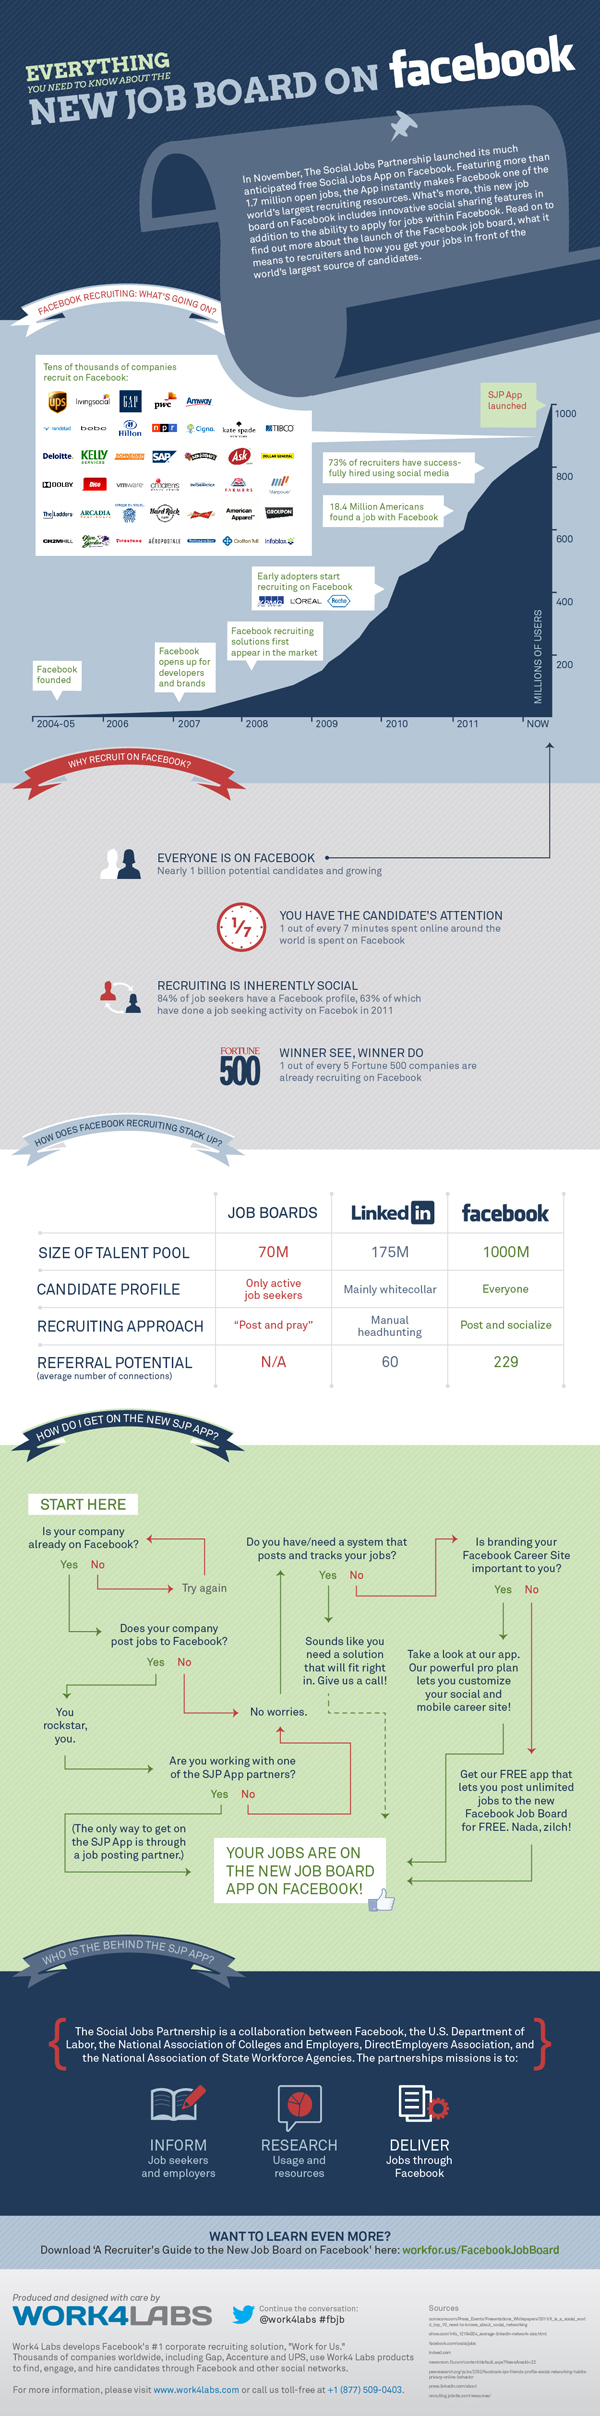 everything you need to know about the new facebook jobboard interested